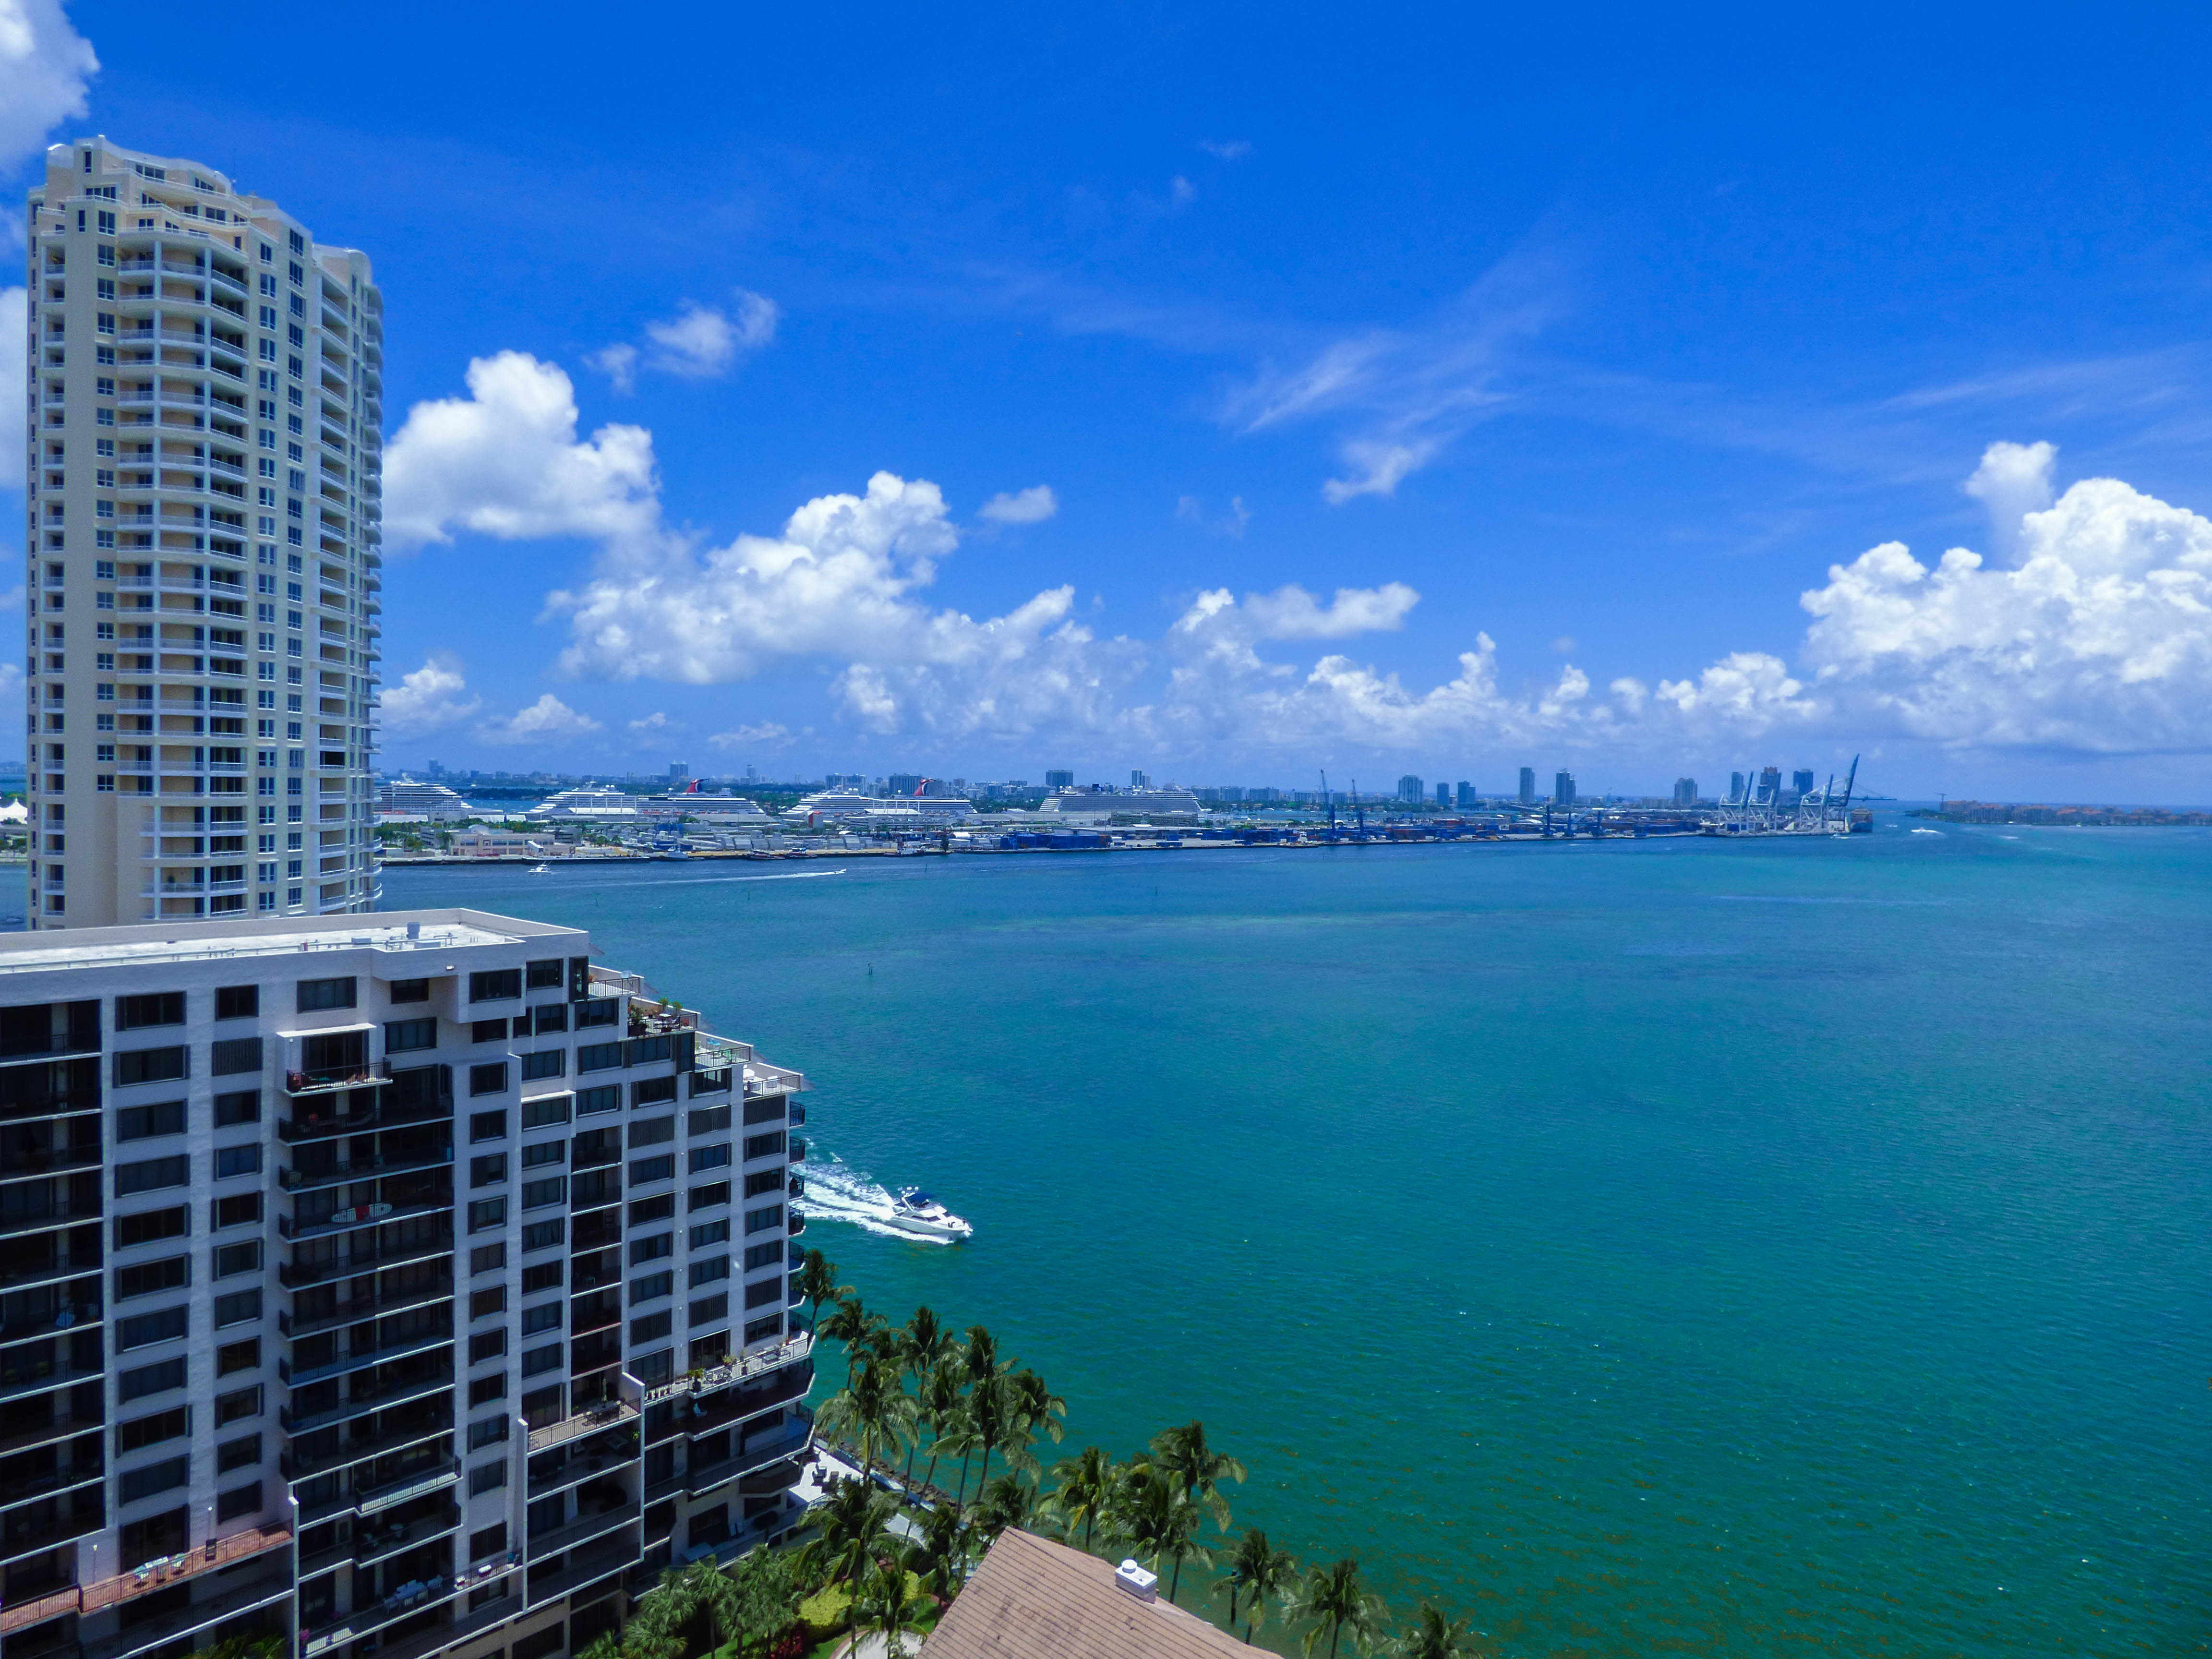 Condominium for Sale at 520 Brickell Key Dr #Aph02 520 Brickell Key Dr APH02 Miami, Florida, 33131 United States